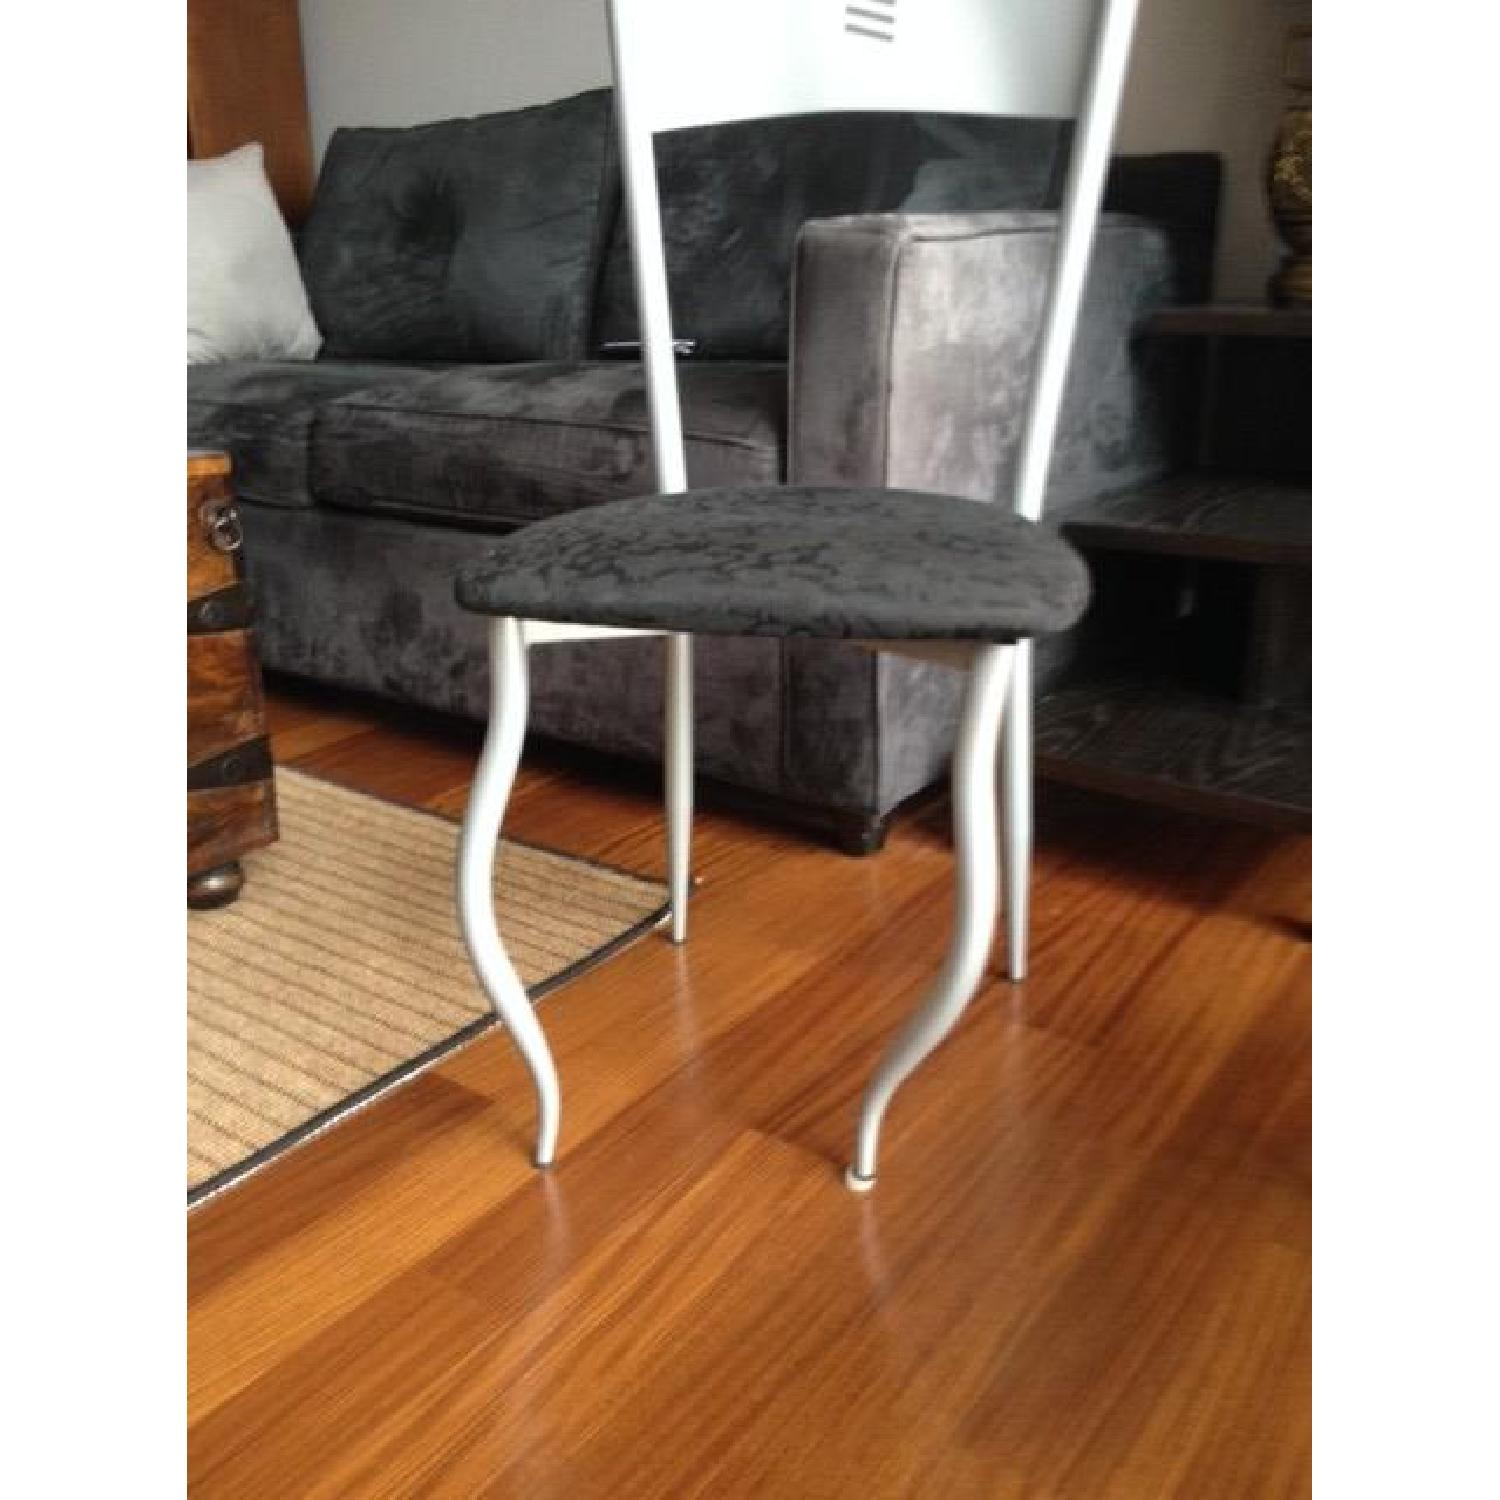 Glass Table w/ 4 Chairs - image-7